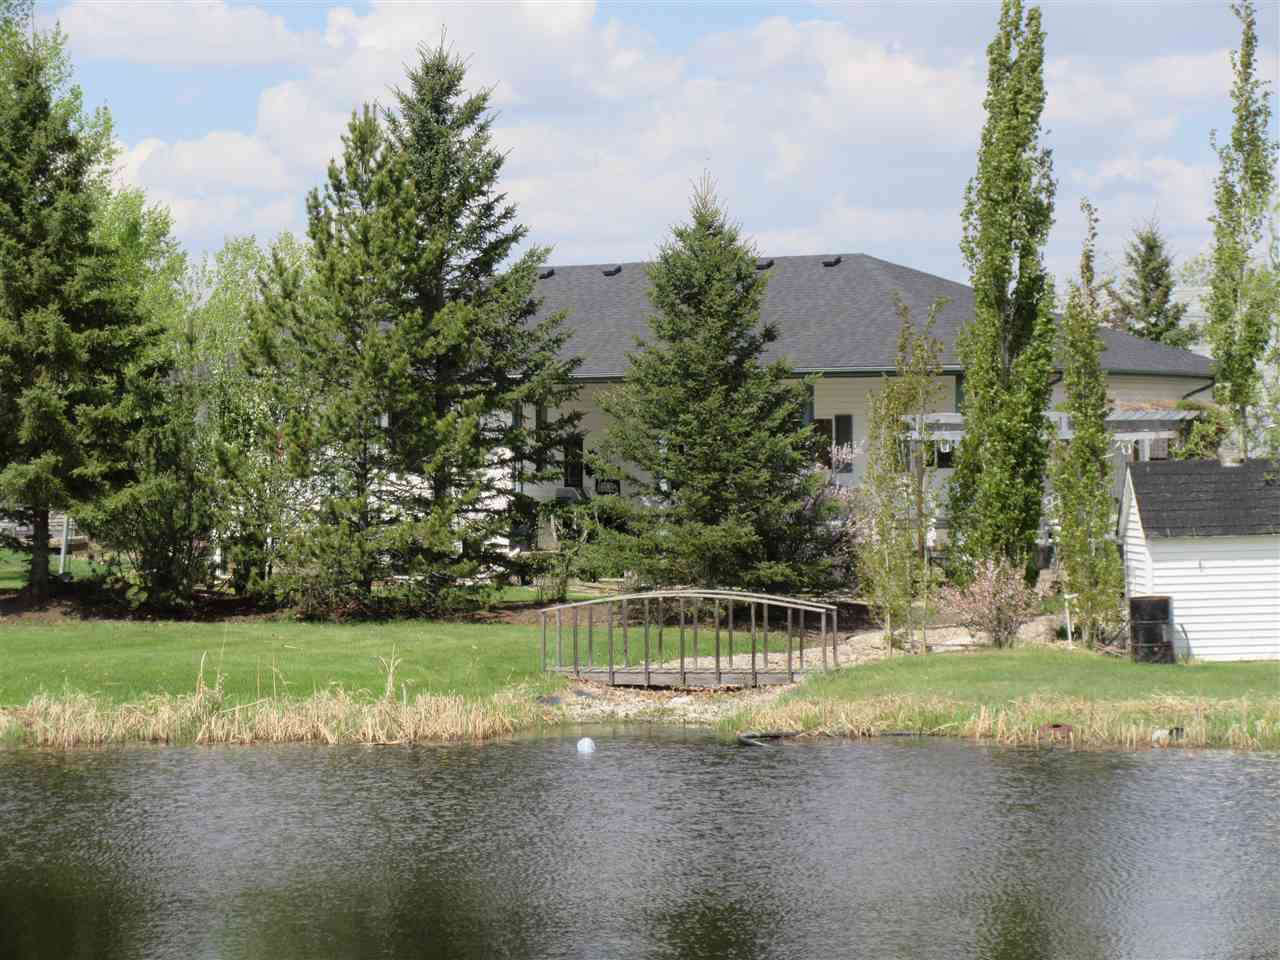 Main Photo: 25329 Twp Rd 560: Rural Sturgeon County House for sale : MLS®# E4213140